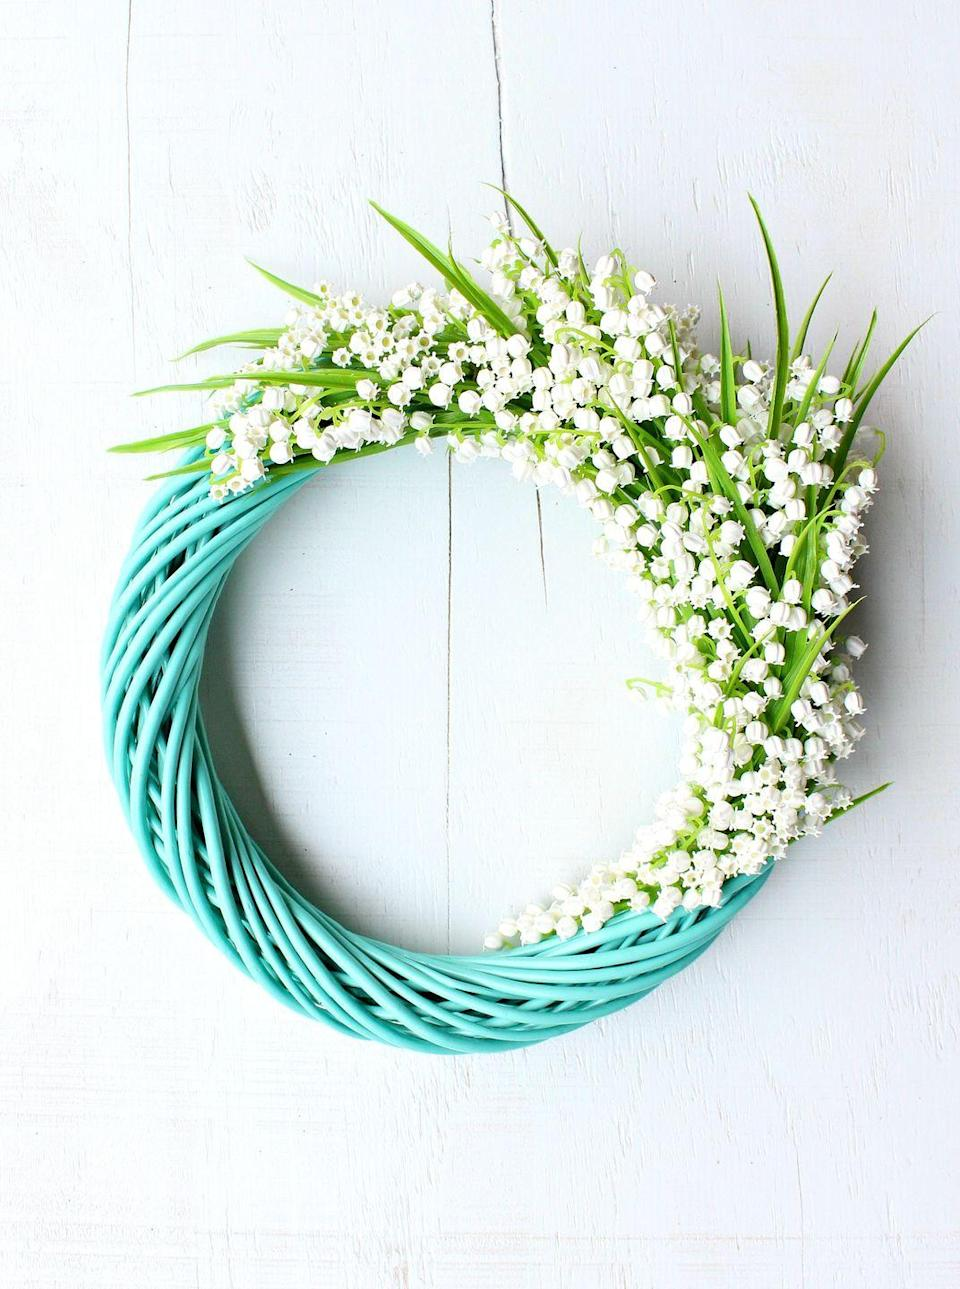 """<p>The sweet scent of lily of the valley flowers may instantly make you think of spring. To create this Easter wreath, you'll use the faux variety that'll last for years to come.</p><p><strong>Get the tutorial at <a href=""""https://www.danslelakehouse.com/2019/07/diy-faux-flower-wreath.html"""" rel=""""nofollow noopener"""" target=""""_blank"""" data-ylk=""""slk:Dans le Lakehouse"""" class=""""link rapid-noclick-resp"""">Dans le Lakehouse</a>.</strong></p><p><a class=""""link rapid-noclick-resp"""" href=""""https://go.redirectingat.com?id=74968X1596630&url=https%3A%2F%2Fwww.walmart.com%2Fip%2F12pcs-Artificial-Lily-of-The-Valley-Flowers-Bush-for-Home-Garden-Wedding-Decoration-12pcs-Artificial-Lily-of-The-Valley-Flowers-Bush-for-Decoration%2F663190981&sref=https%3A%2F%2Fwww.thepioneerwoman.com%2Fhome-lifestyle%2Fcrafts-diy%2Fg35698457%2Fdiy-easter-wreath-ideas%2F"""" rel=""""nofollow noopener"""" target=""""_blank"""" data-ylk=""""slk:SHOP FAUX LILY OF THE VALLEY FLOWERS"""">SHOP FAUX LILY OF THE VALLEY FLOWERS</a></p>"""